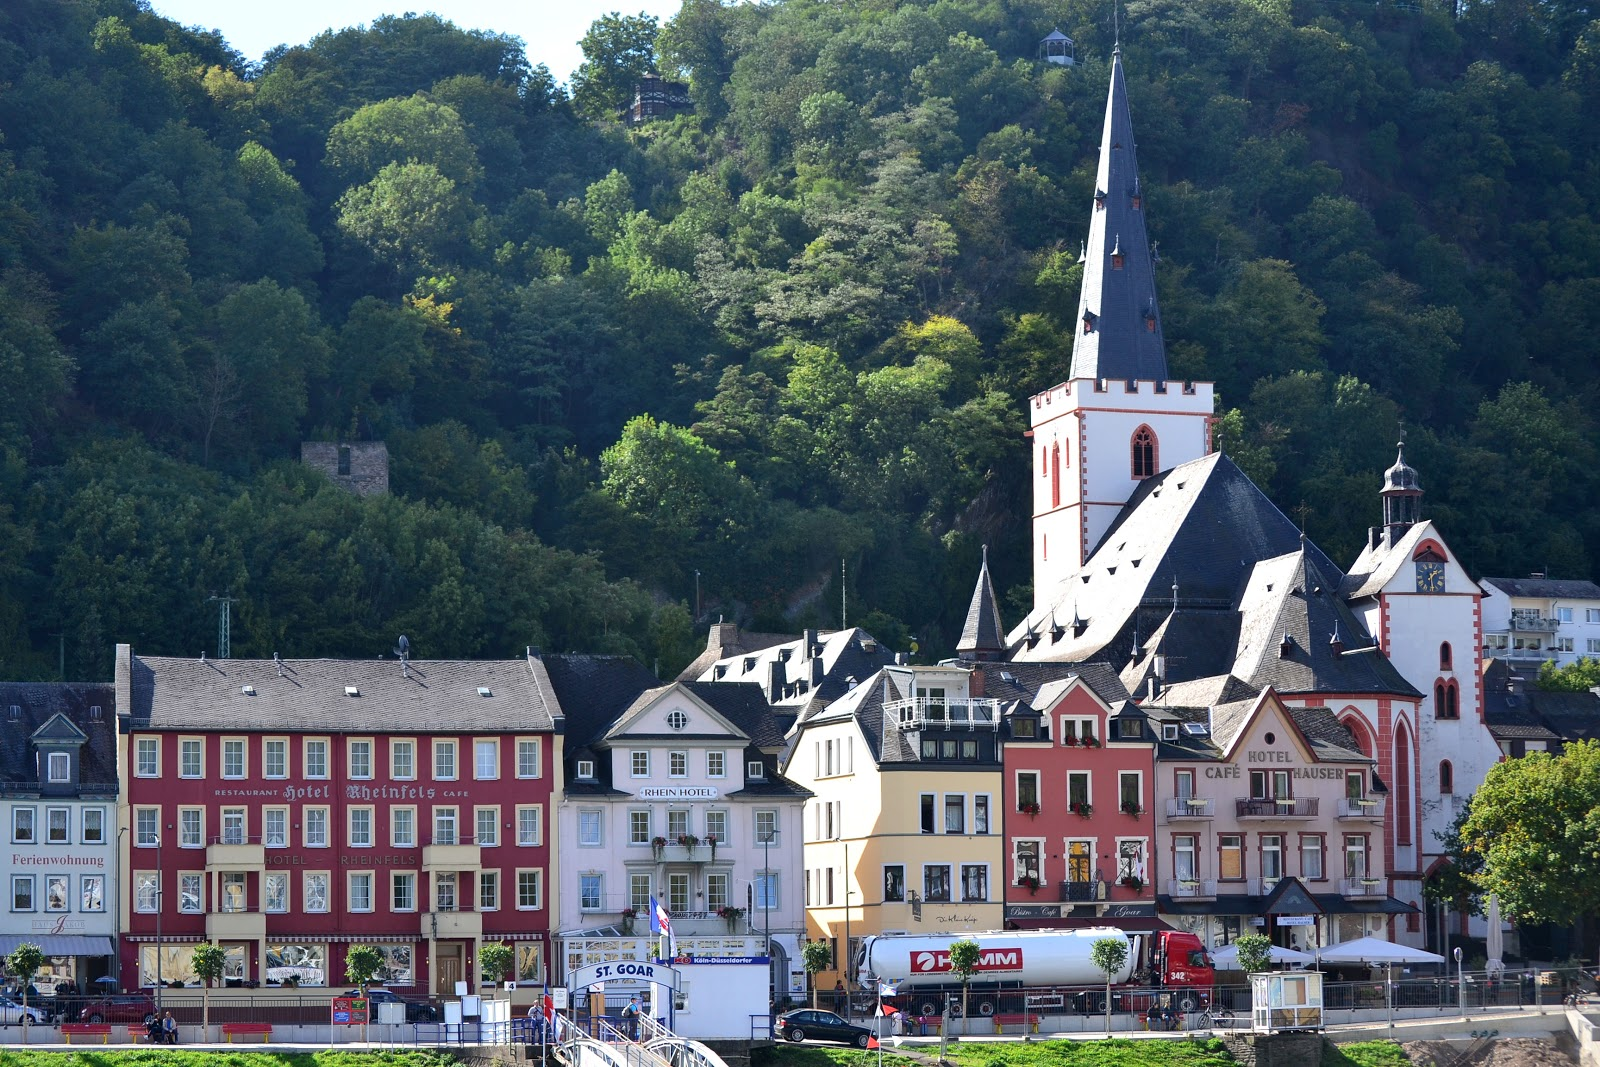 Saint Goar along the Rhine River in Germany.